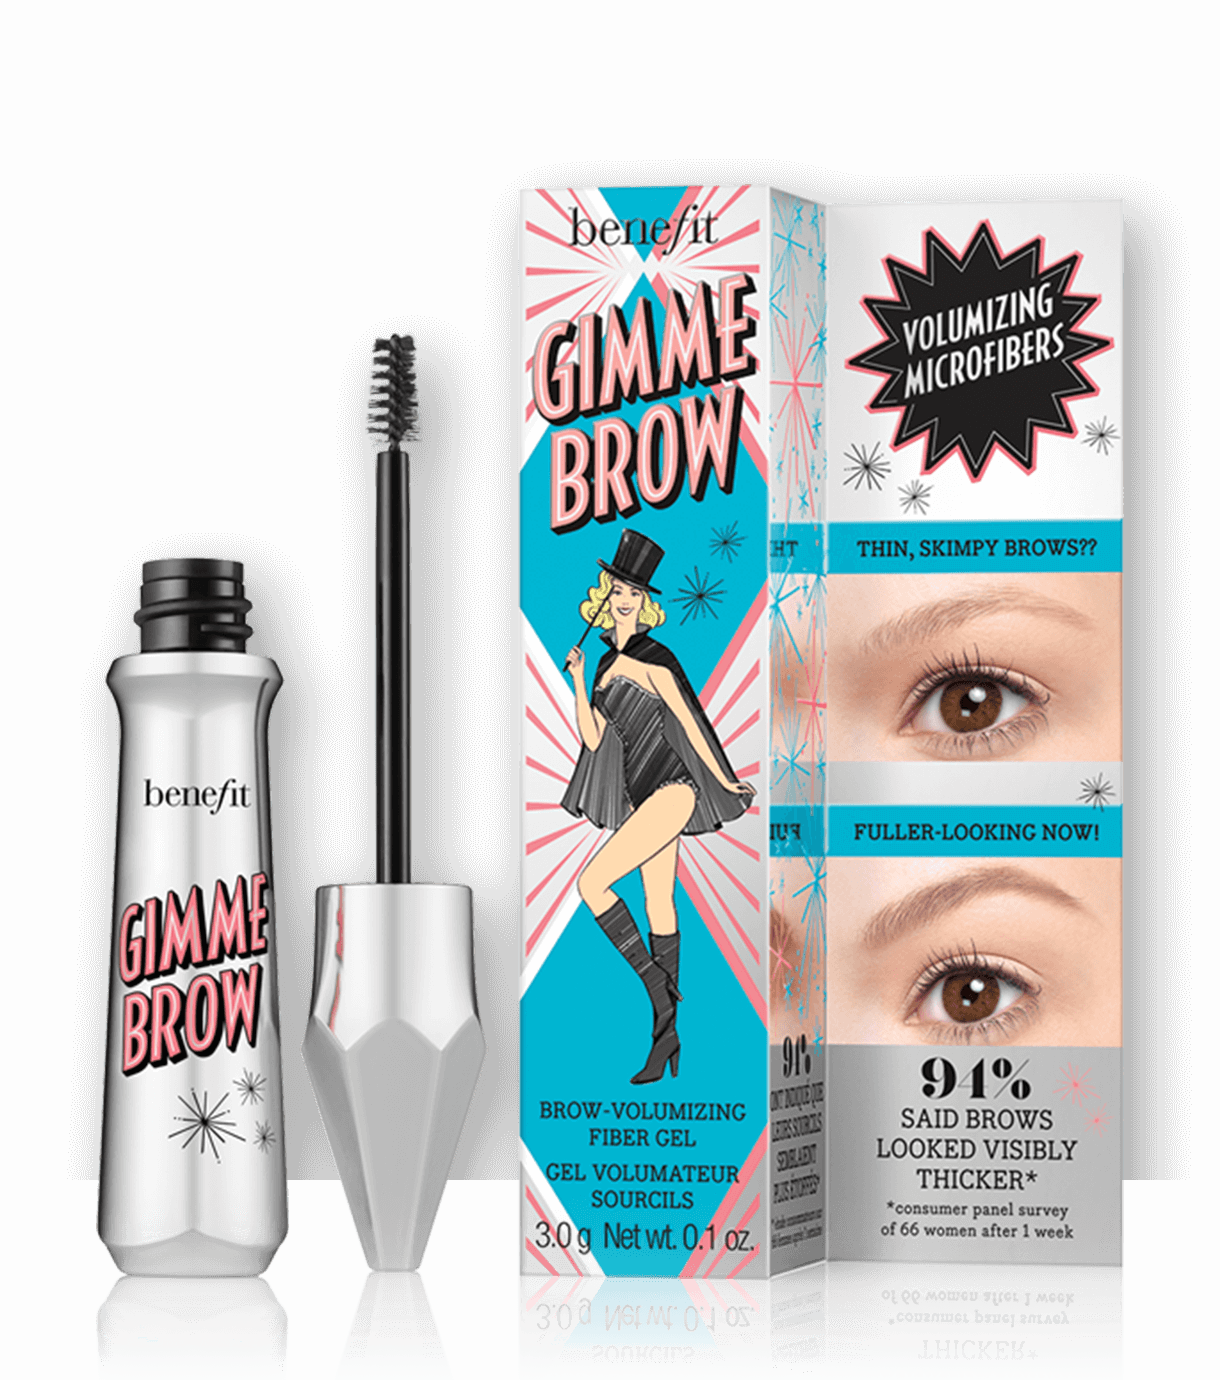 New Benefit Gimme Brow